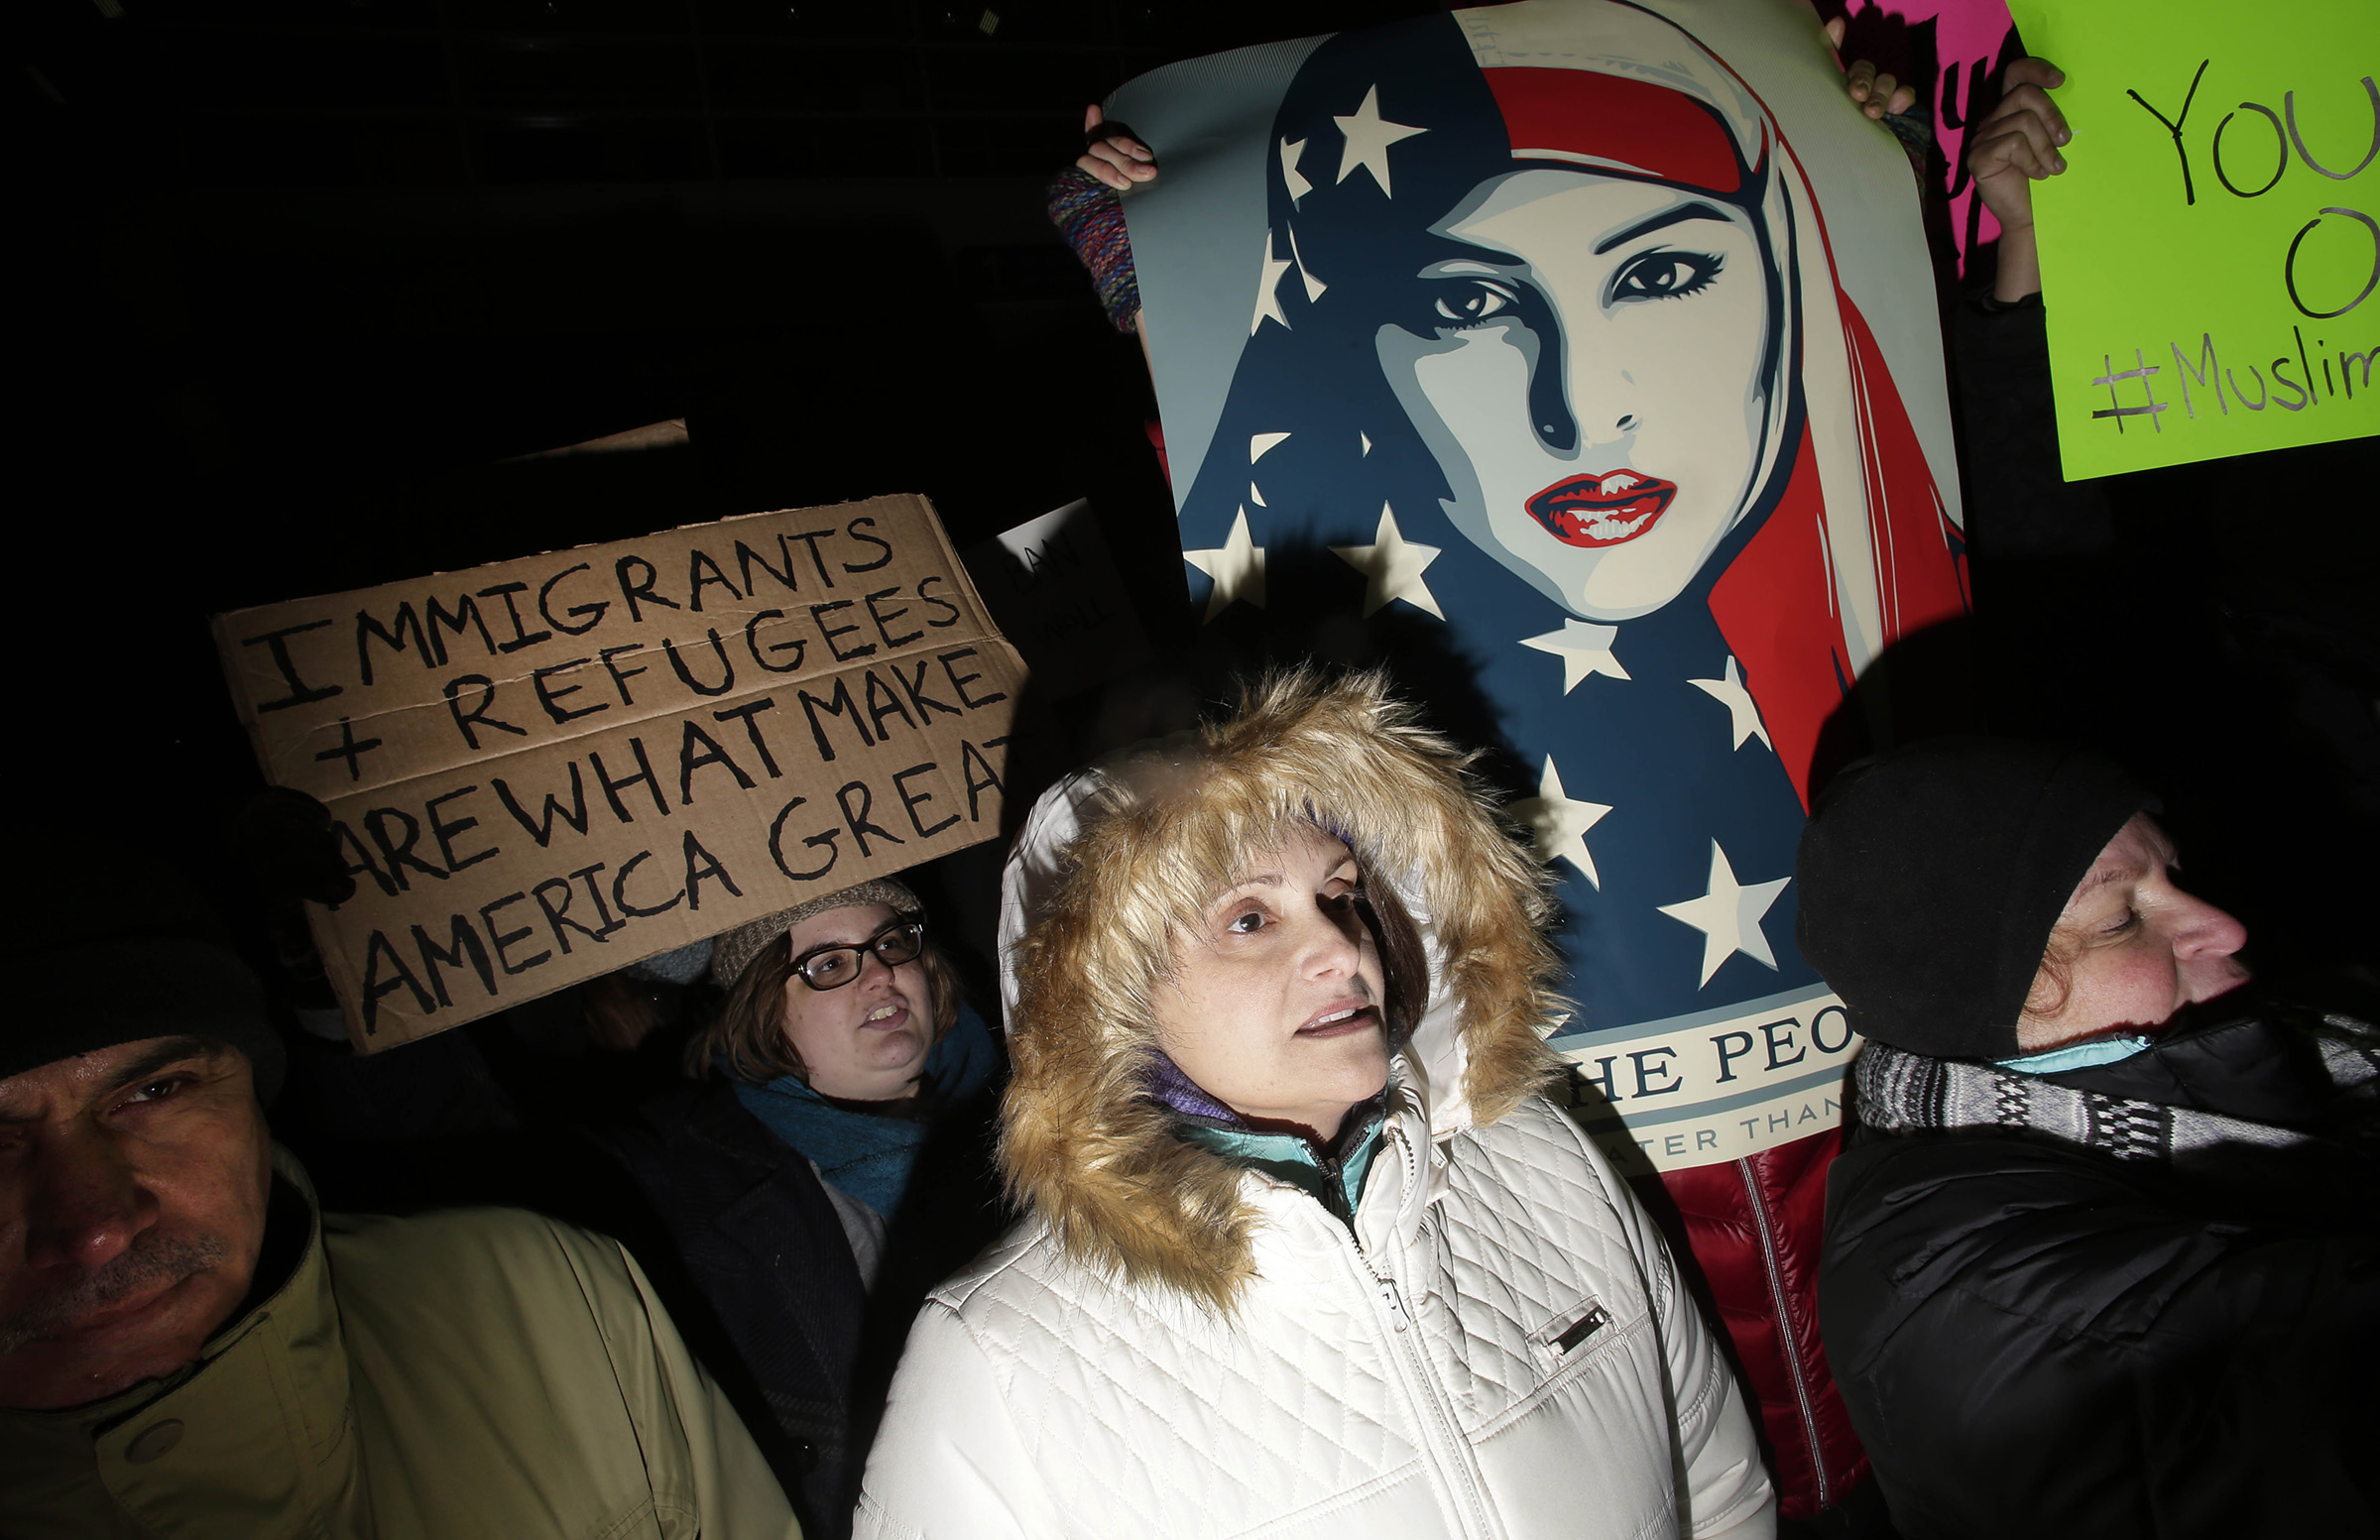 Demonstrators protest President Donald Trump's executive immigration ban at O'Hare International Airport on January 29, 2017 in Chicago, Illinois.